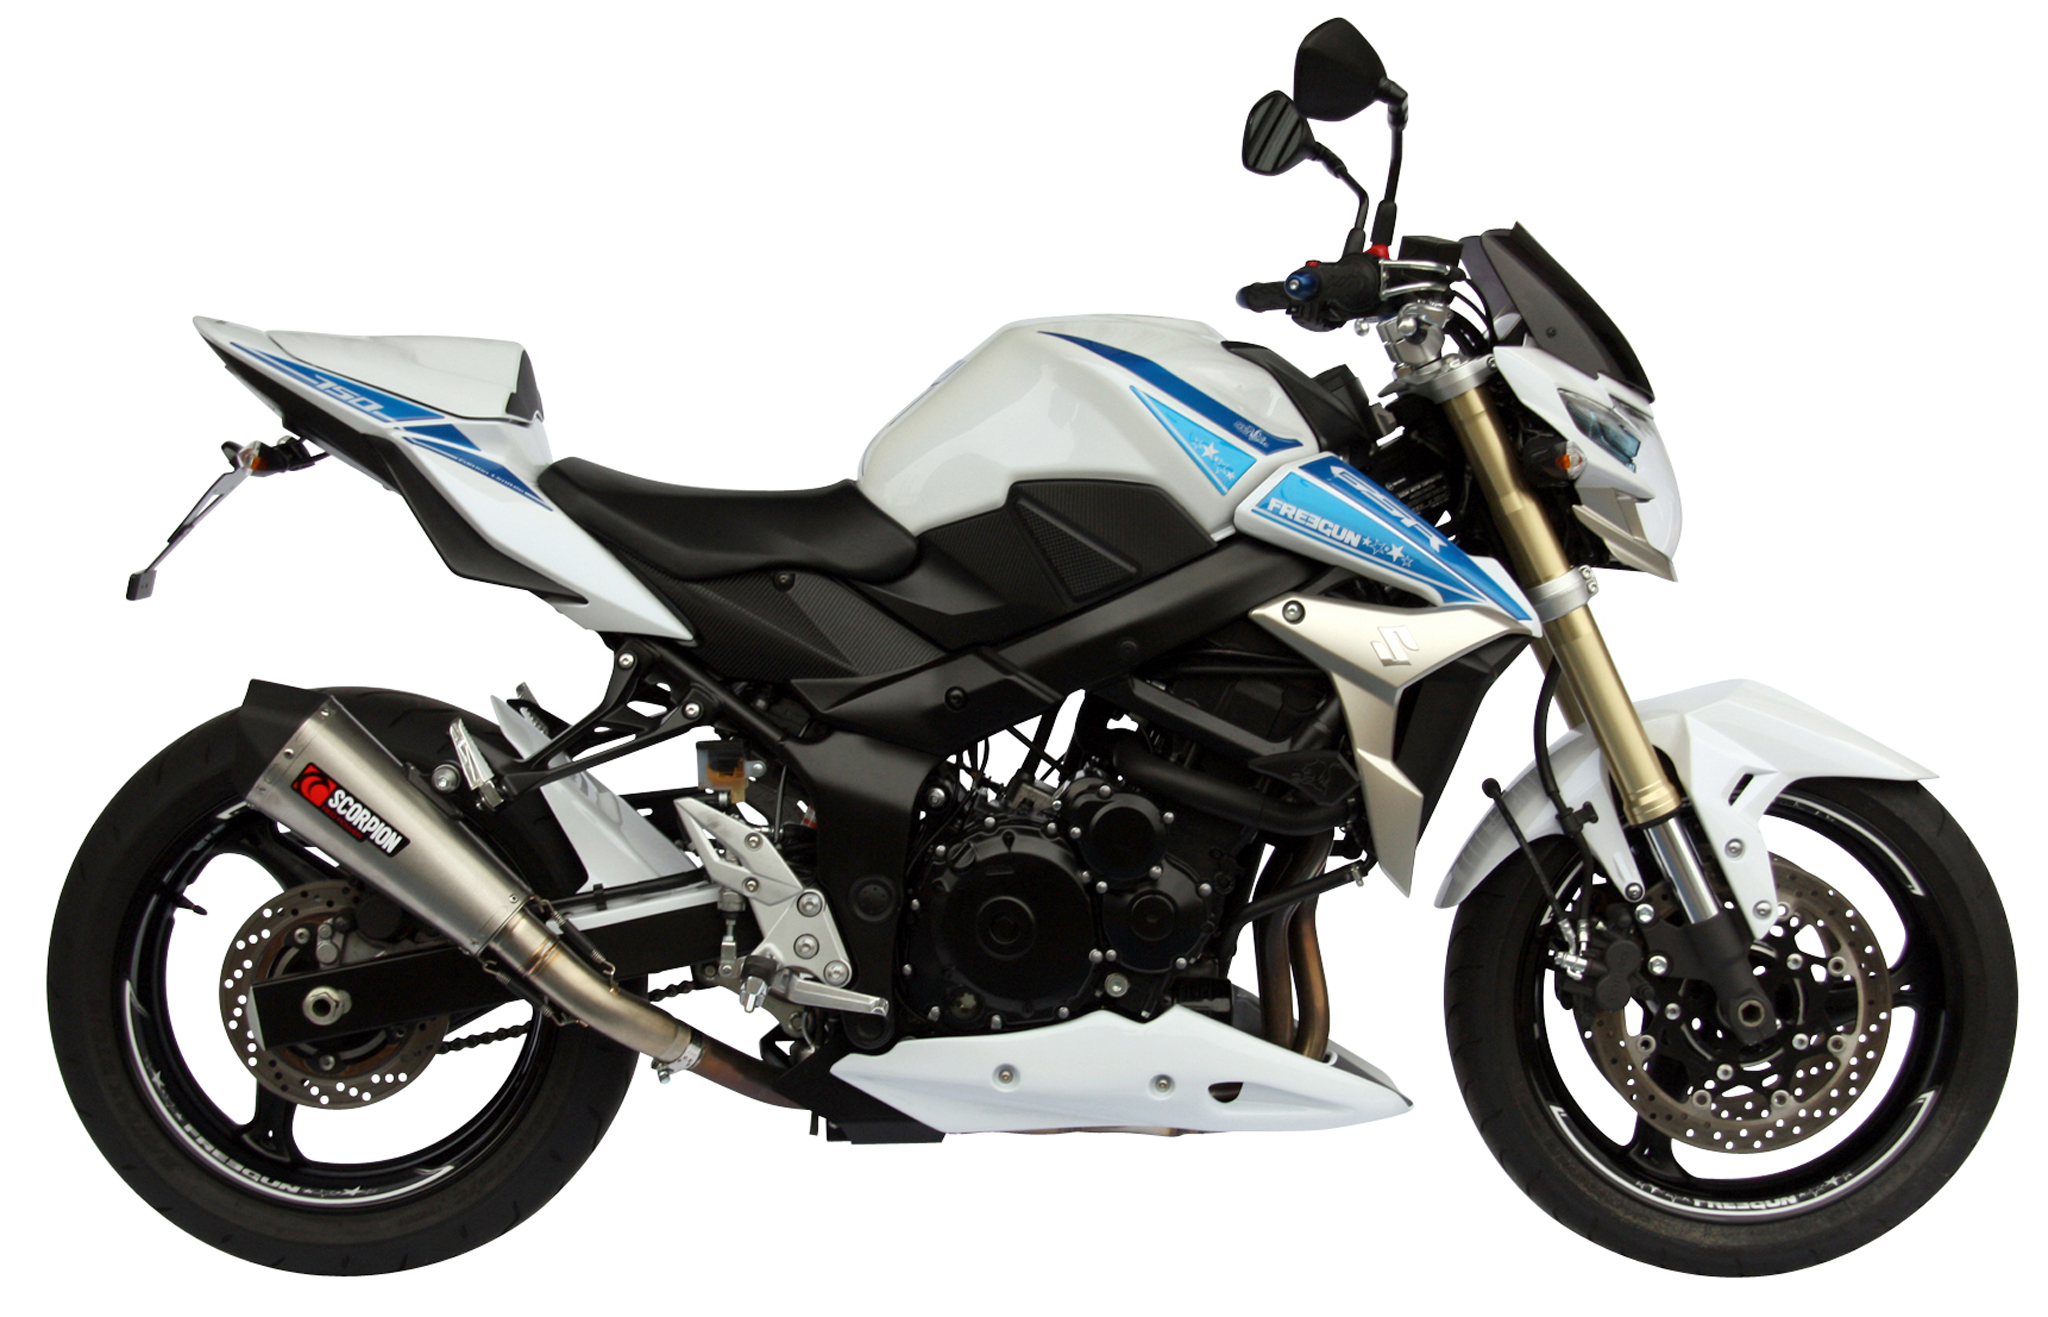 2012 suzuki gsr 750 pics specs and information. Black Bedroom Furniture Sets. Home Design Ideas